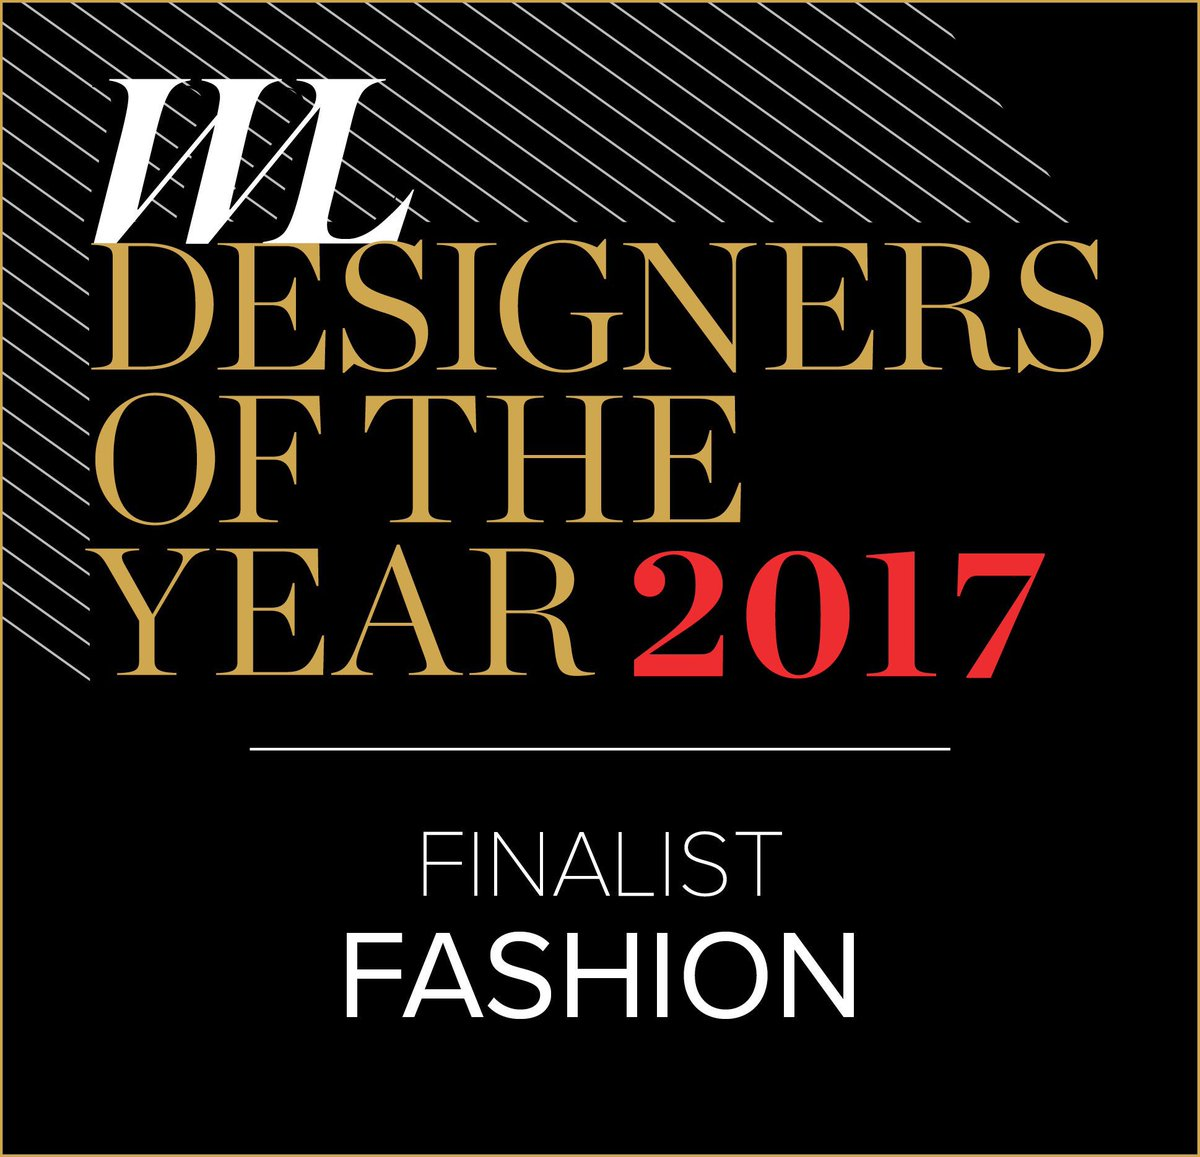 So this happened recently...Happy to be a finalist in @westernliving &#39;s Designers of the Year for Fashion! #design #fashion #shoemaker<br>http://pic.twitter.com/LZbUh8jKYk